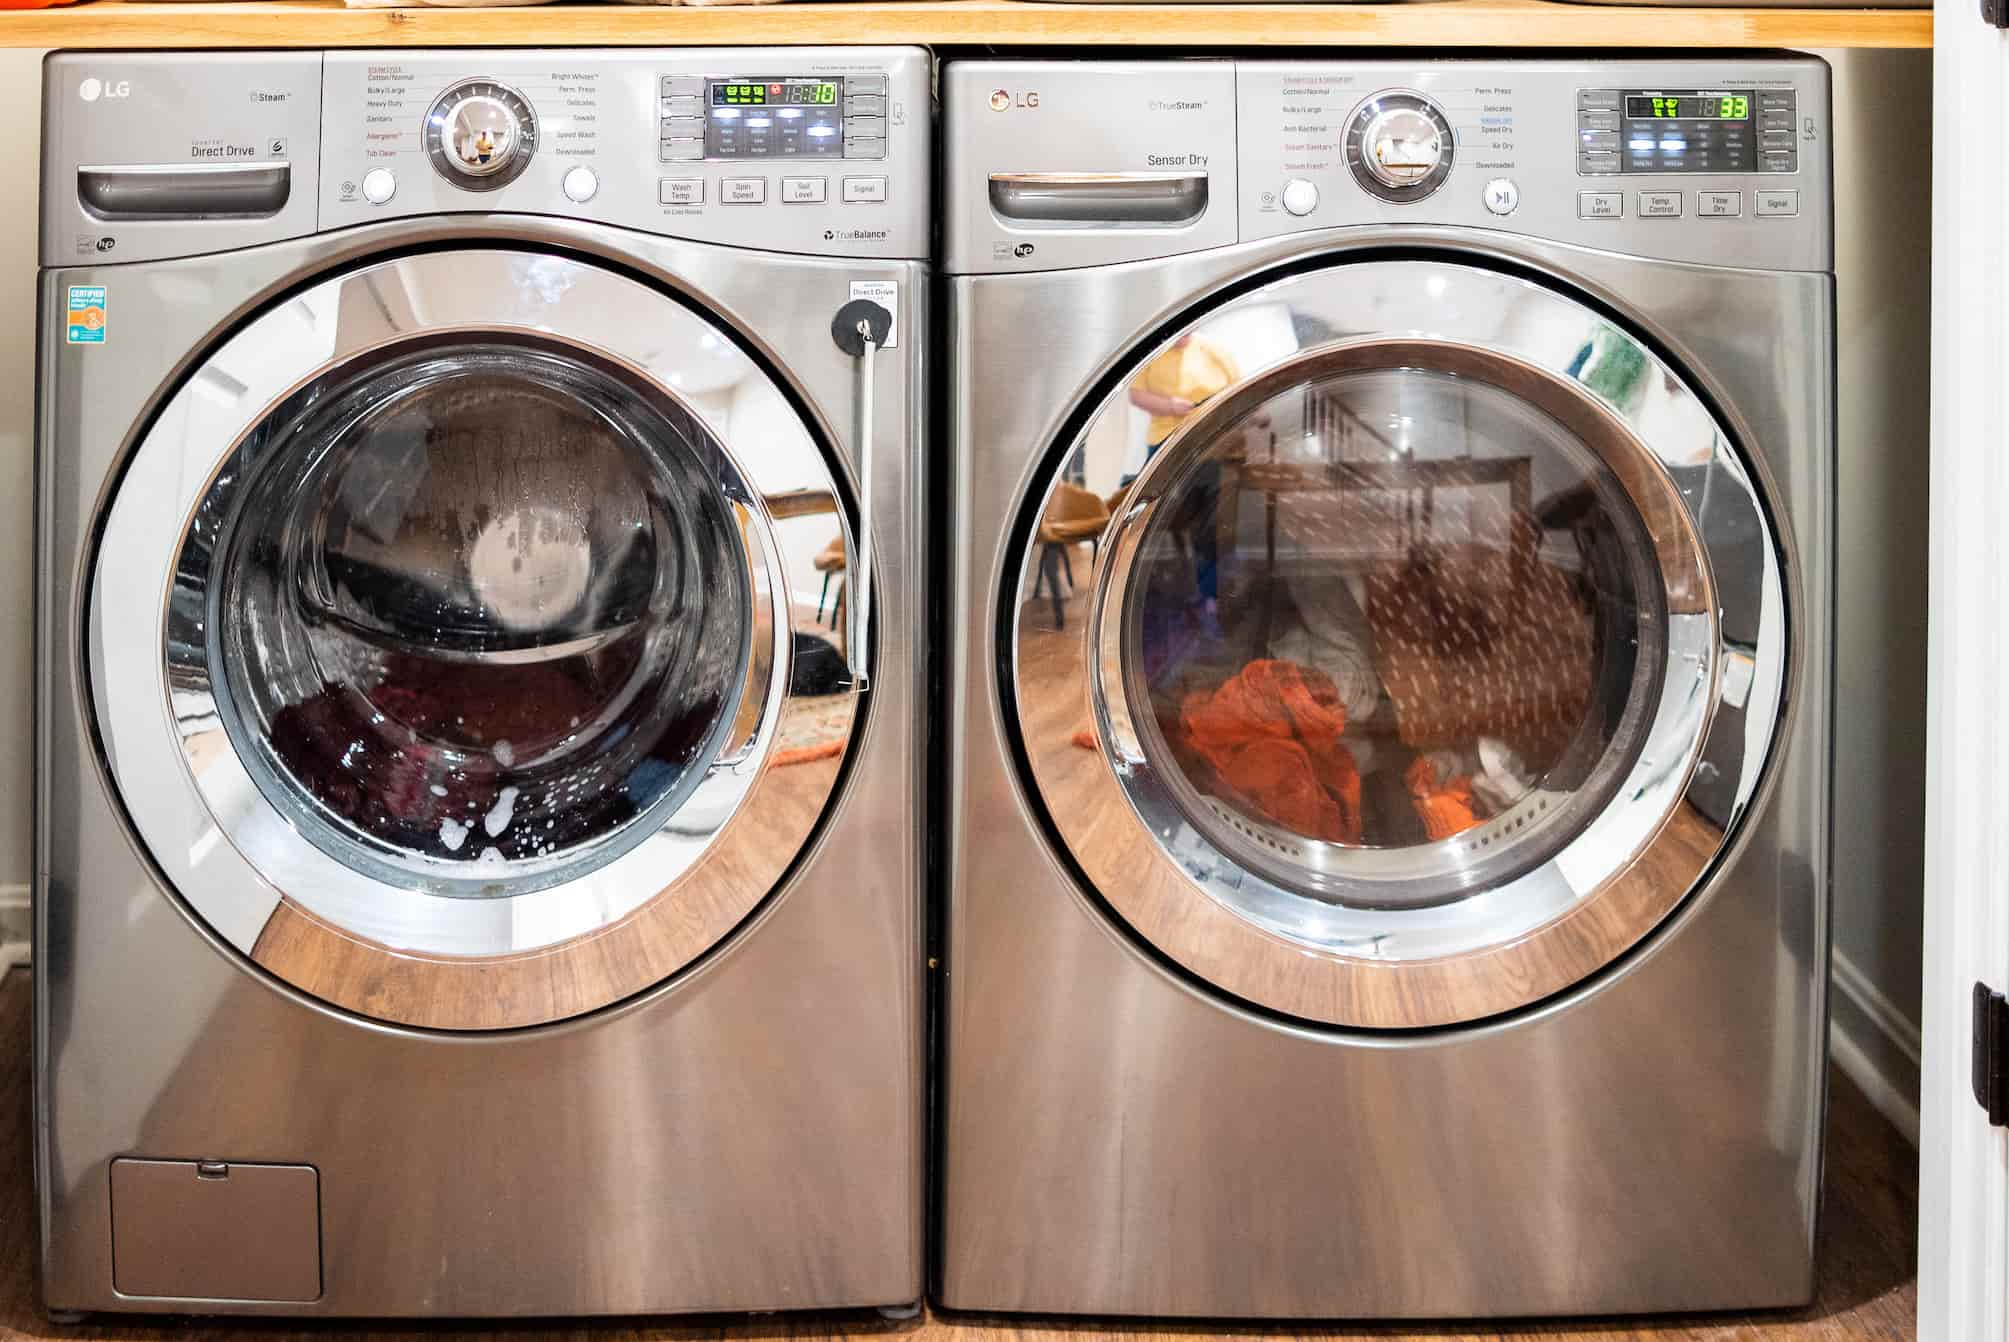 DIY Without Fear   How To Remove The Pedestal From A Washer And Dryer (4 Steps)